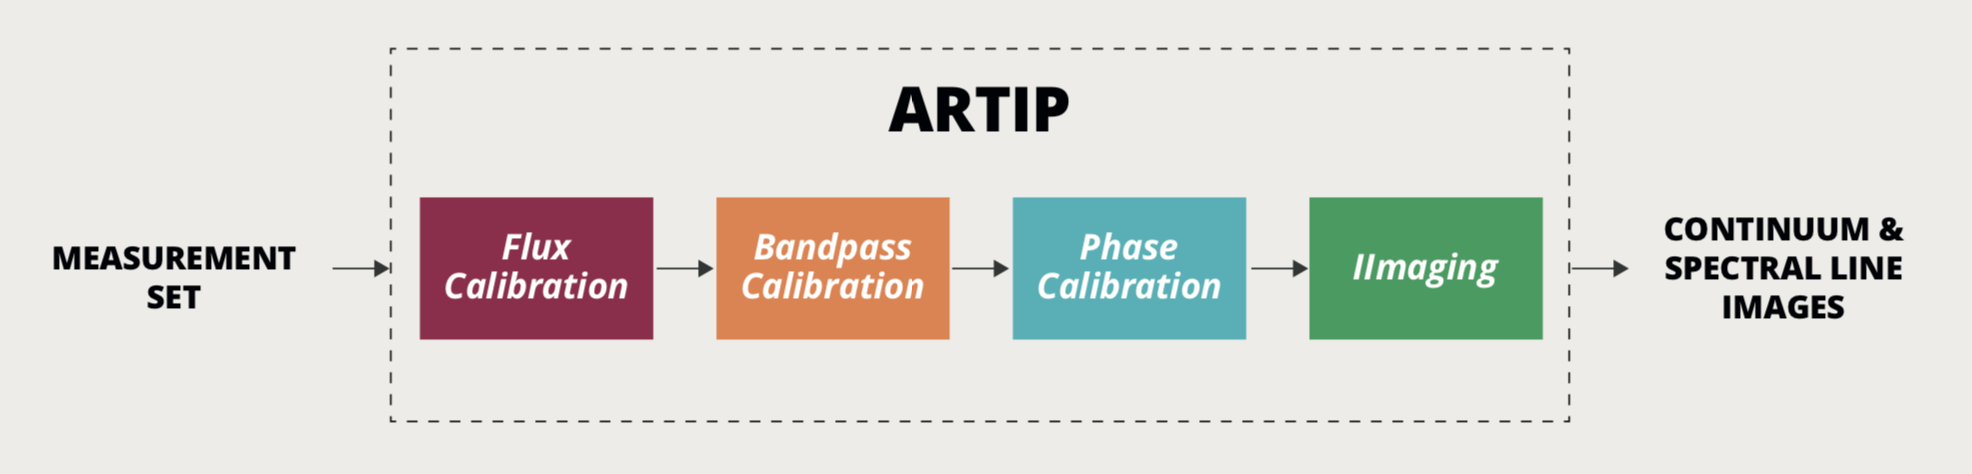 ARTIP Imaging Pipeline